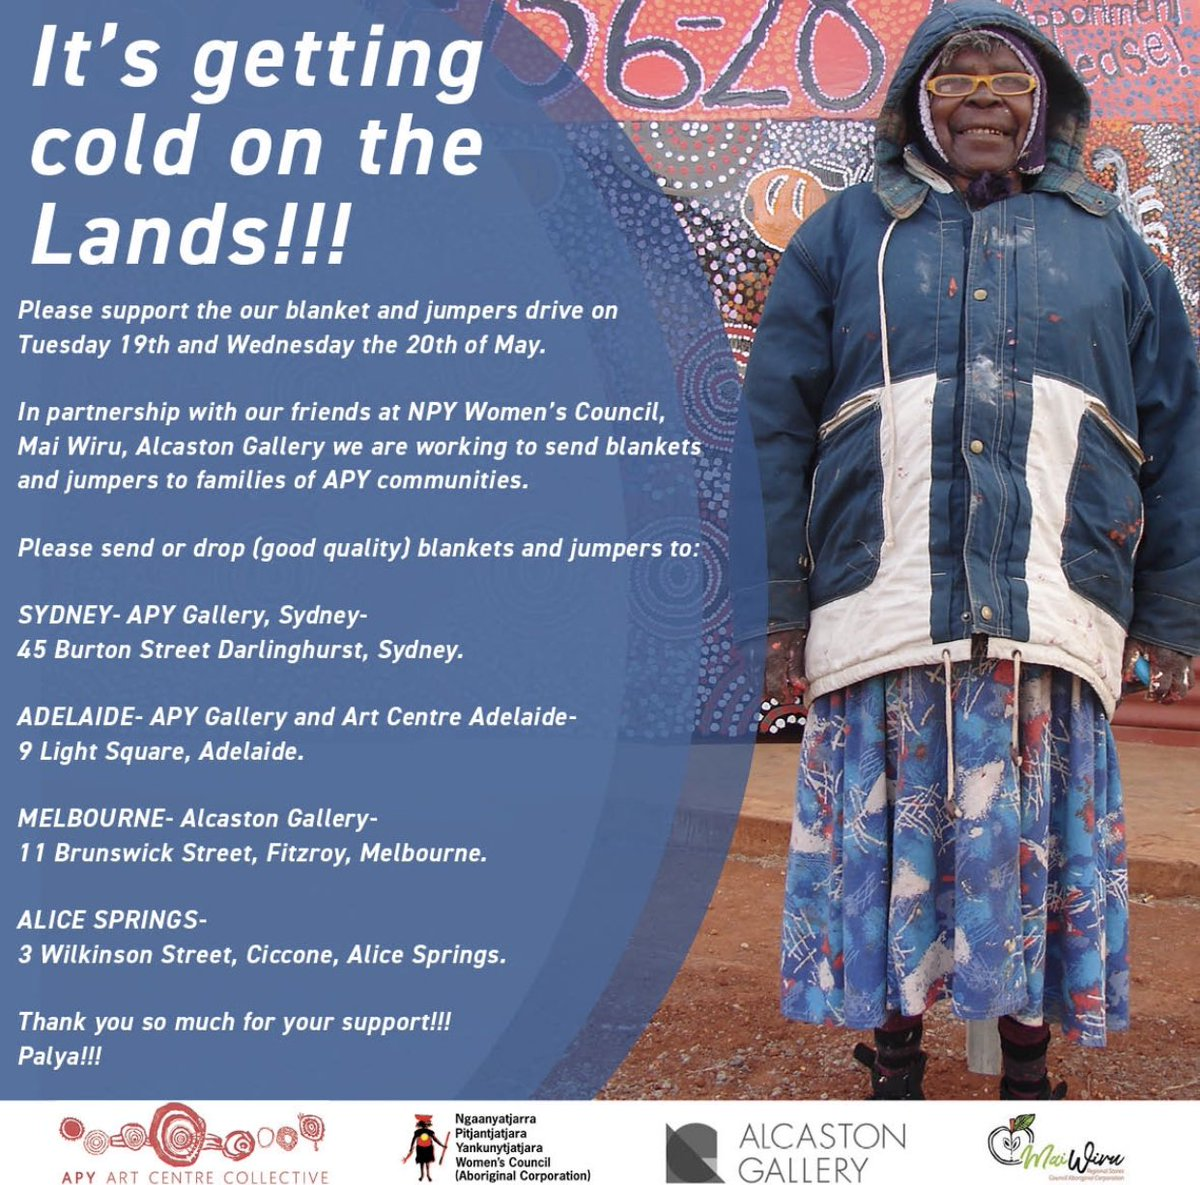 A reminder for our wonderful friends in Sydney, Mebourne and Adelaide, please support our blanket and jumpers drive, and let us put your unused blankets and warm jumpers to good use on the APY Lands this winter! We are so grateful for your support!🖤💛❤️